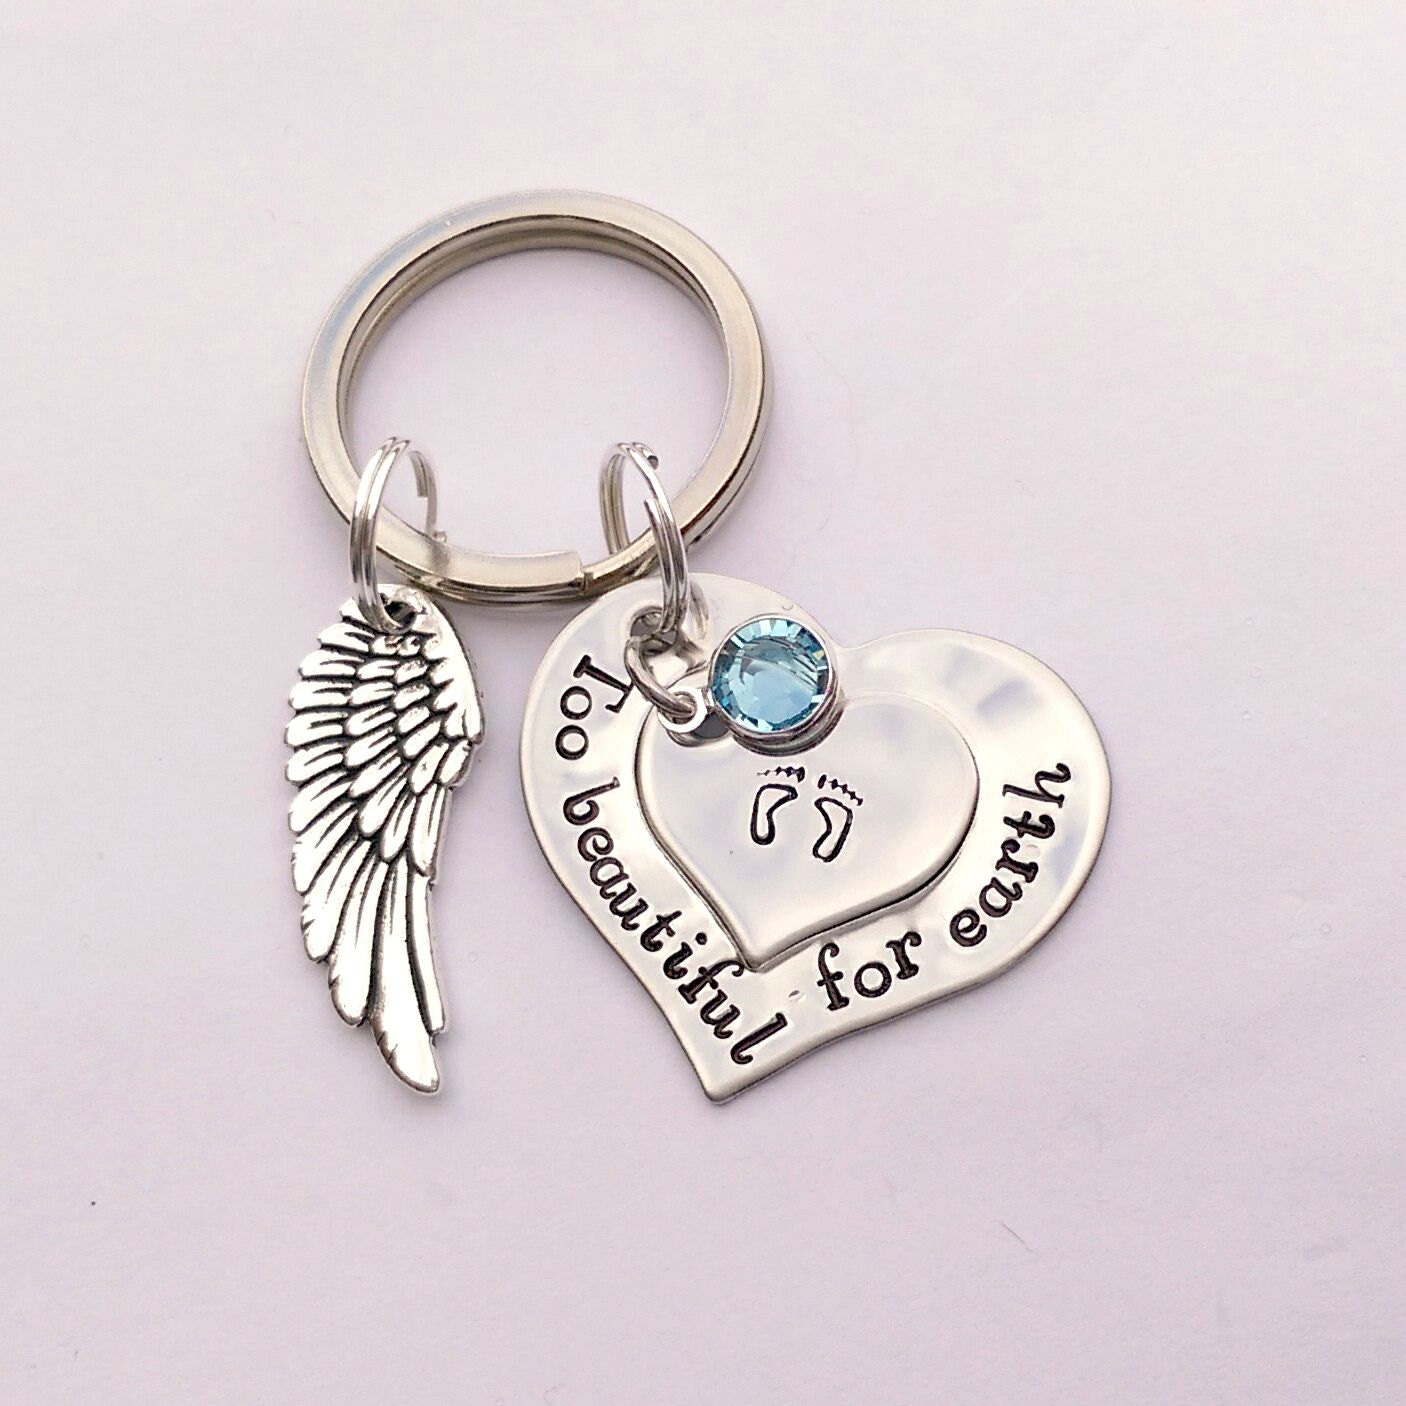 Personalised Too beautiful for earth keyring - personalized memorial keychain - remembrance  - bereavement gifts presents - memorial keyring